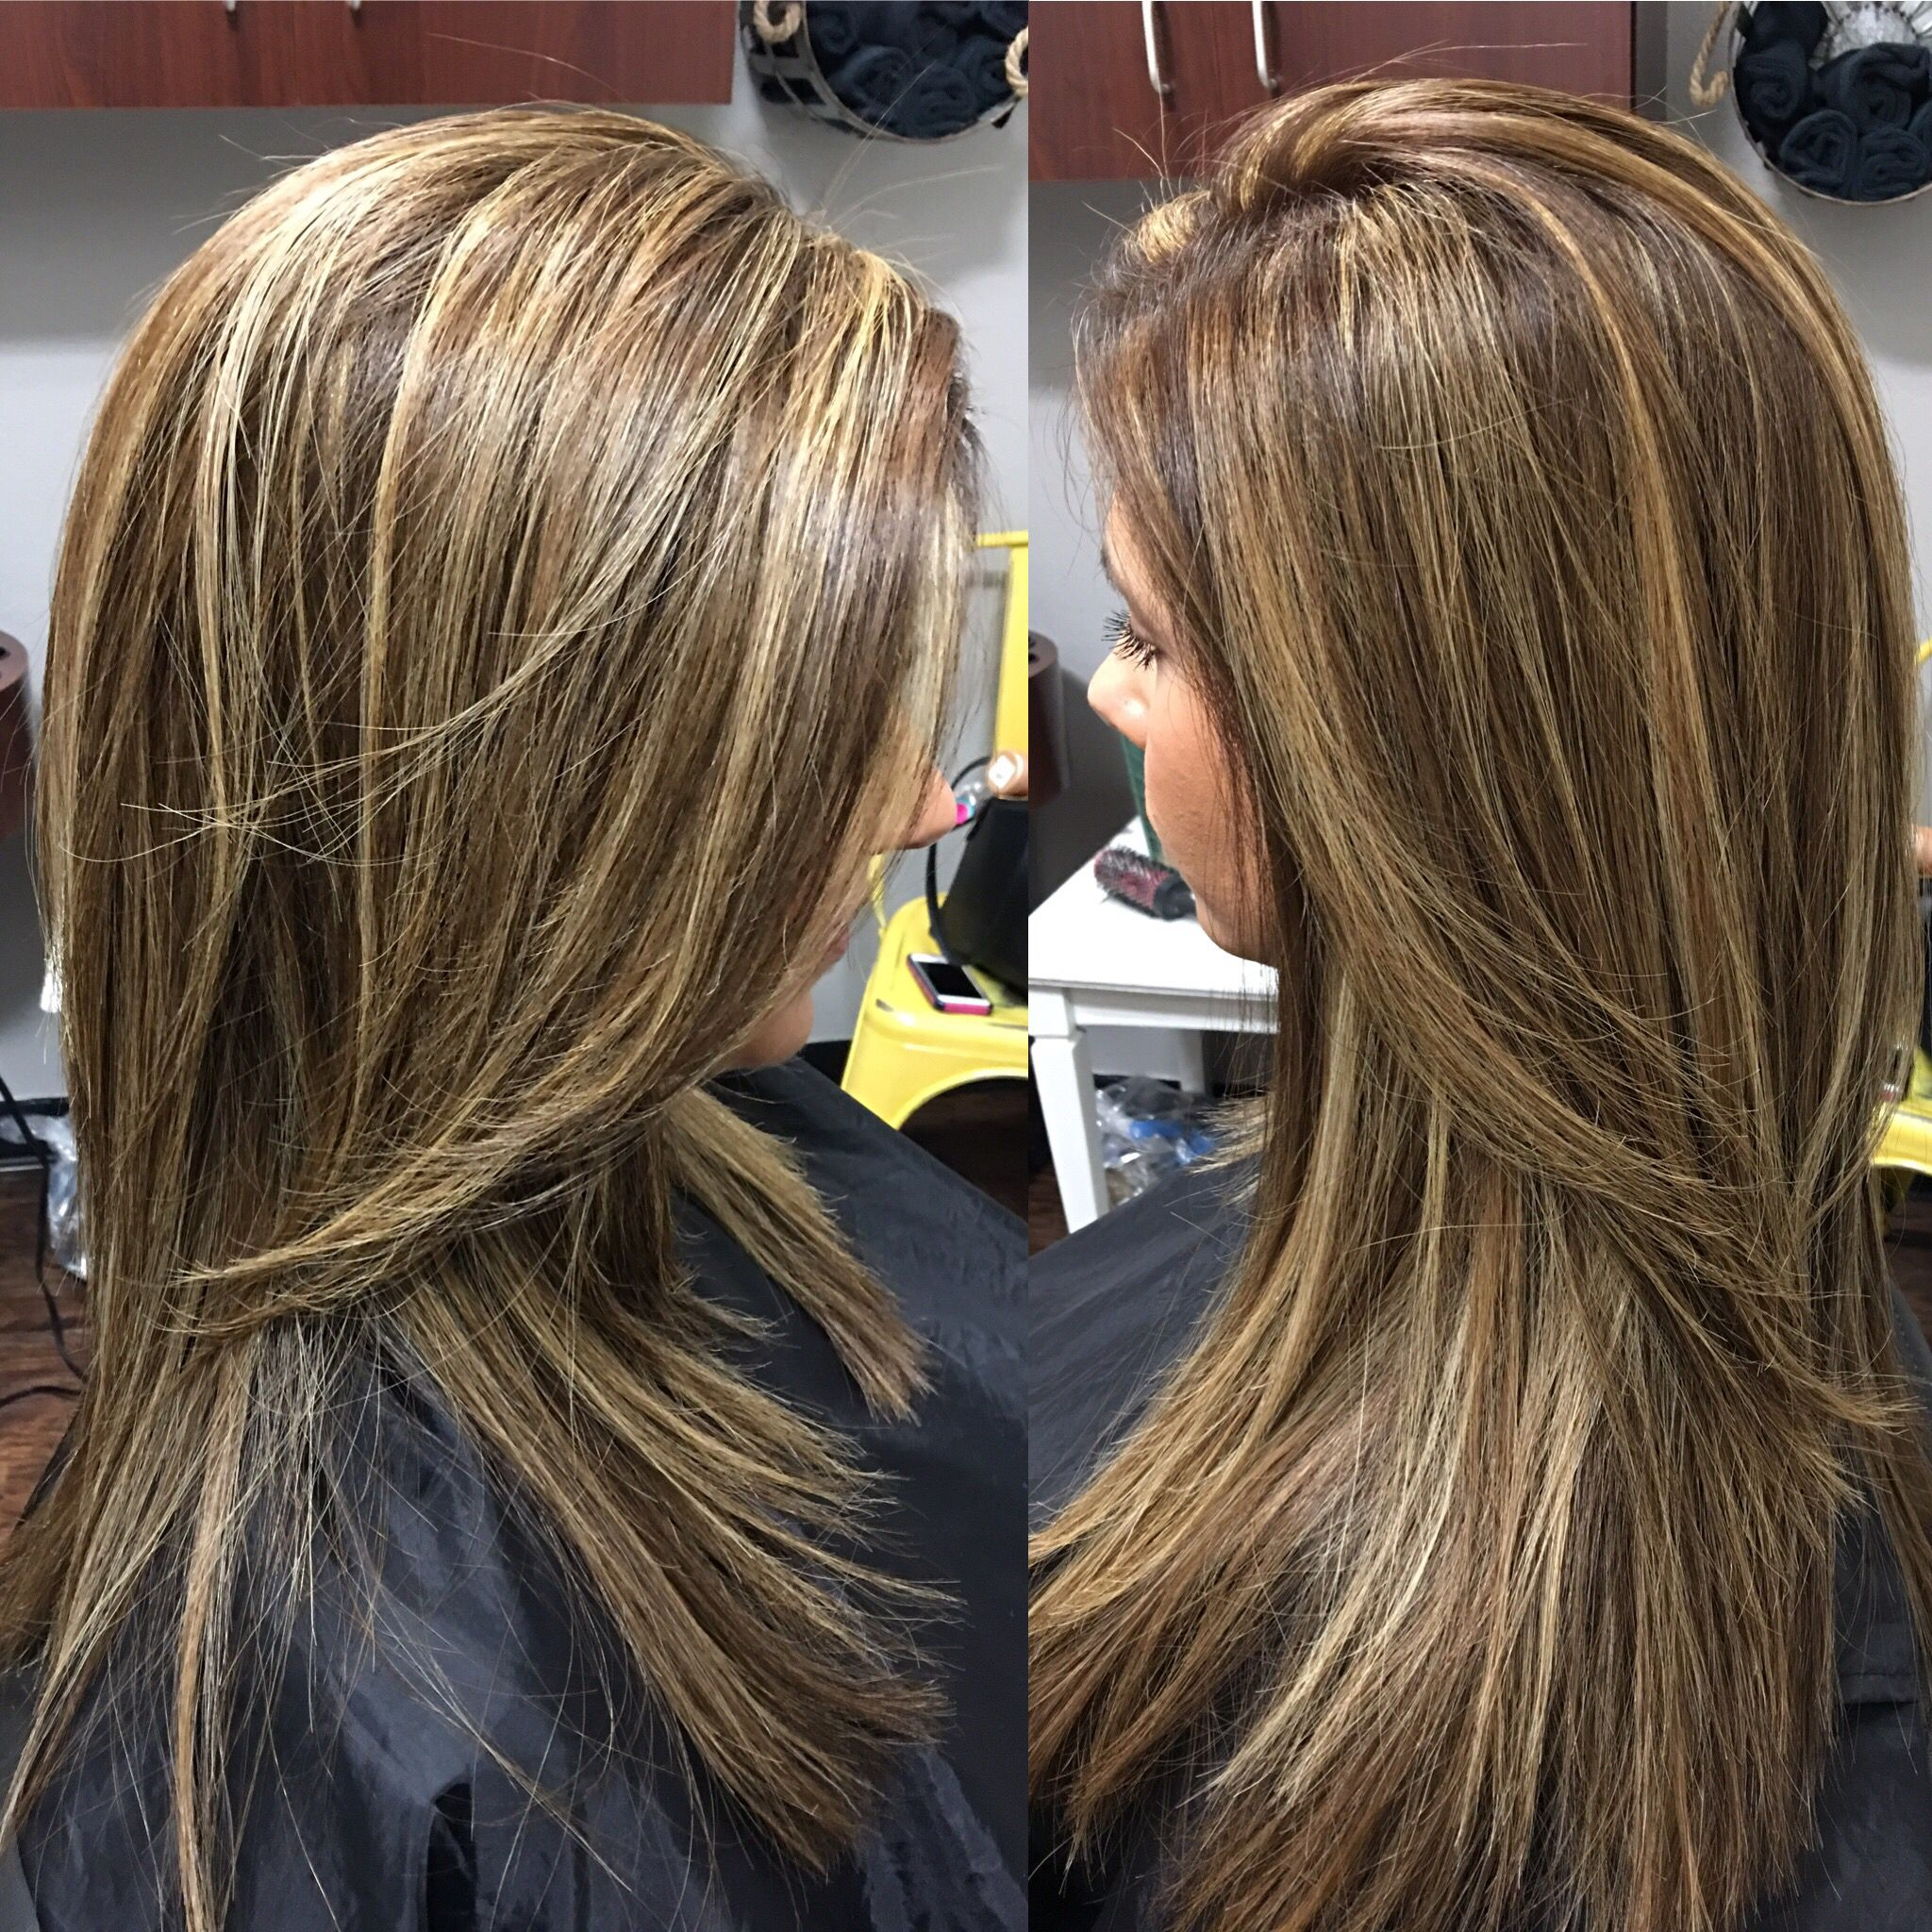 Partial Foil Highlights And Lowlights And Finished Off With A Soft Sleek Look Hairdestinybyerin Hair Styles Brown Hair With Blonde Highlights Hair Highlights